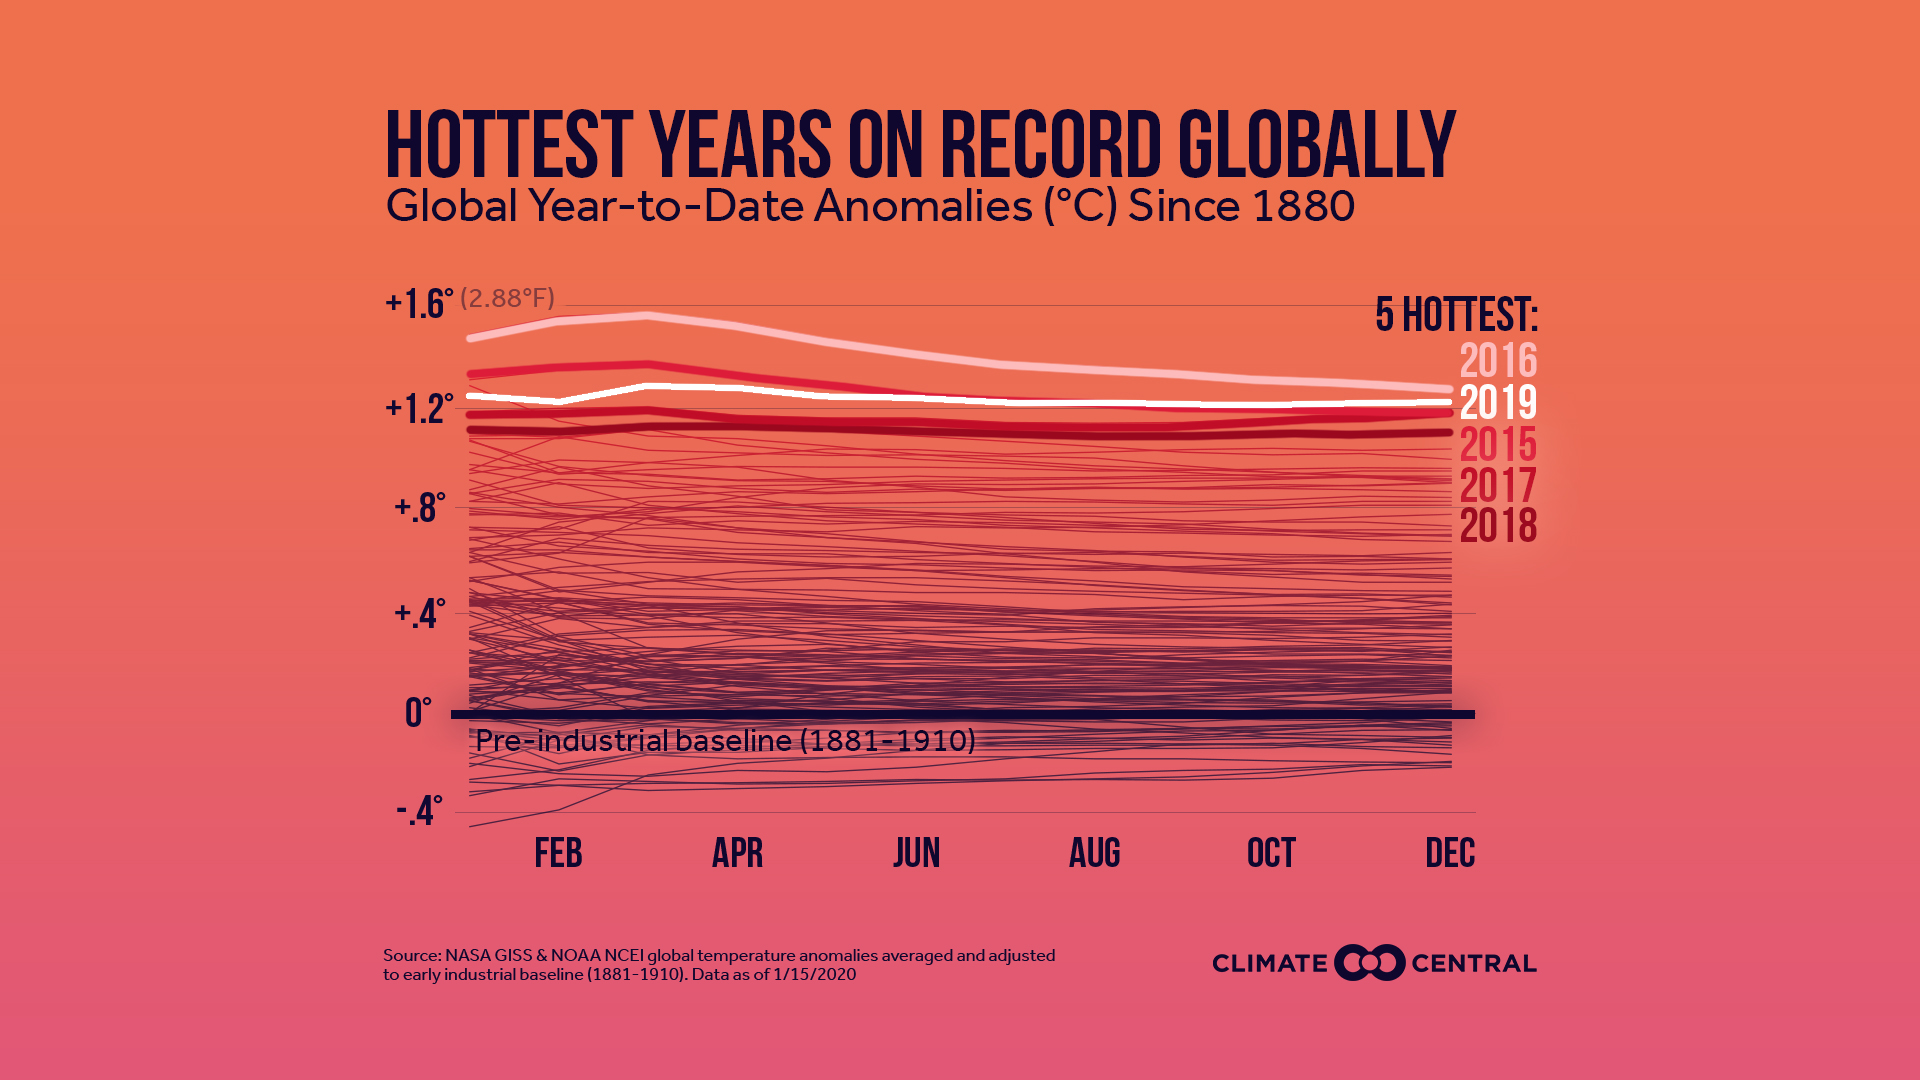 Five hottest years on record for the second year running